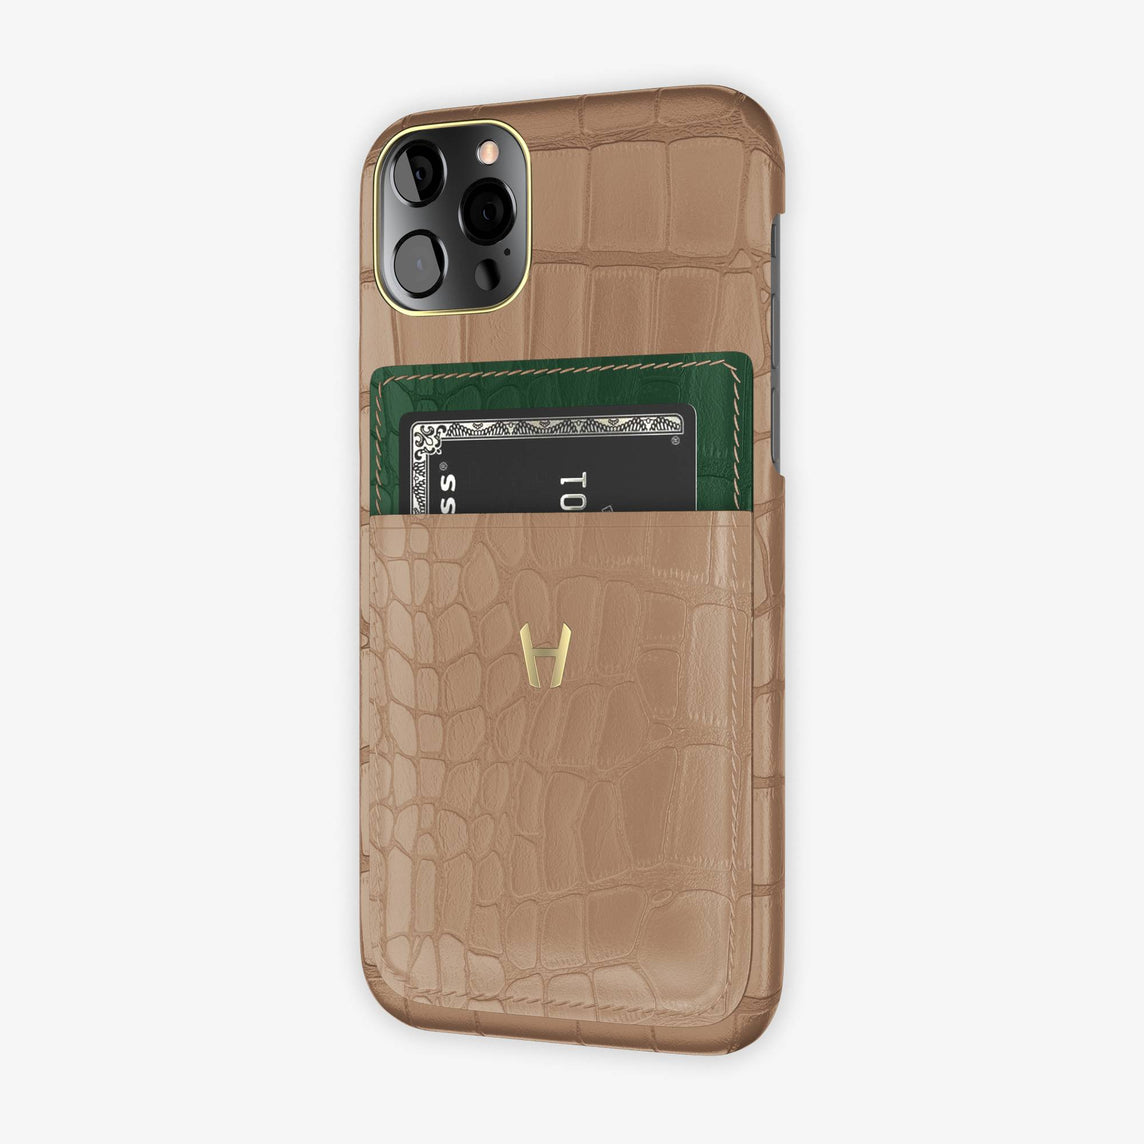 Alligator Pocket Case iPhone  12 & 12 Pro | Latte/Green - Yellow Gold